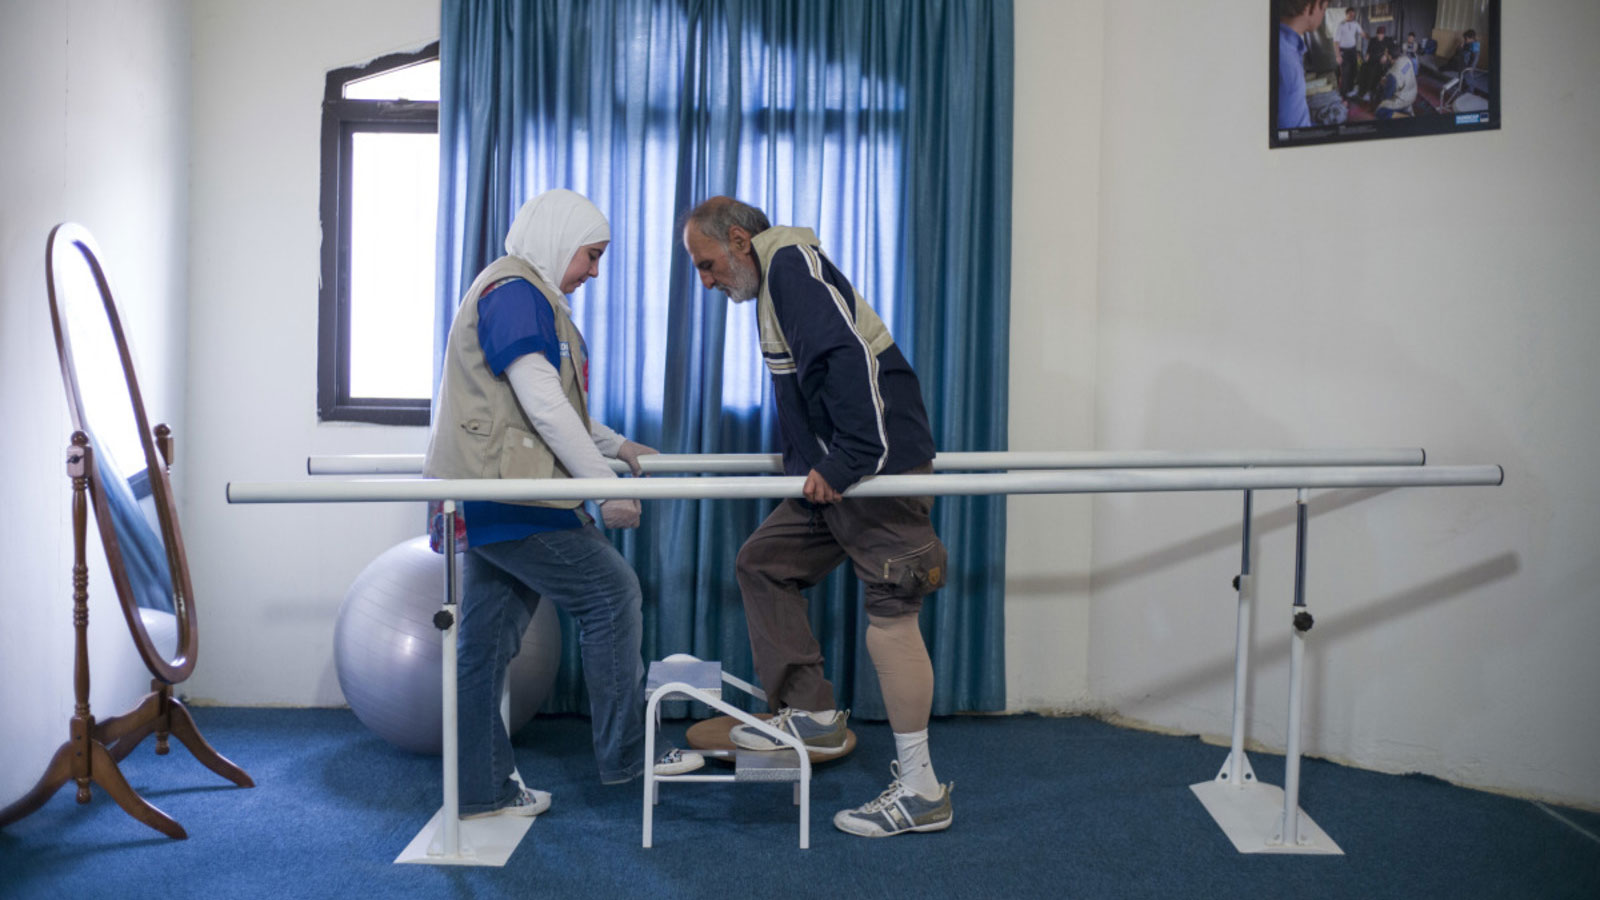 1/5 Syrian Refugees has disability